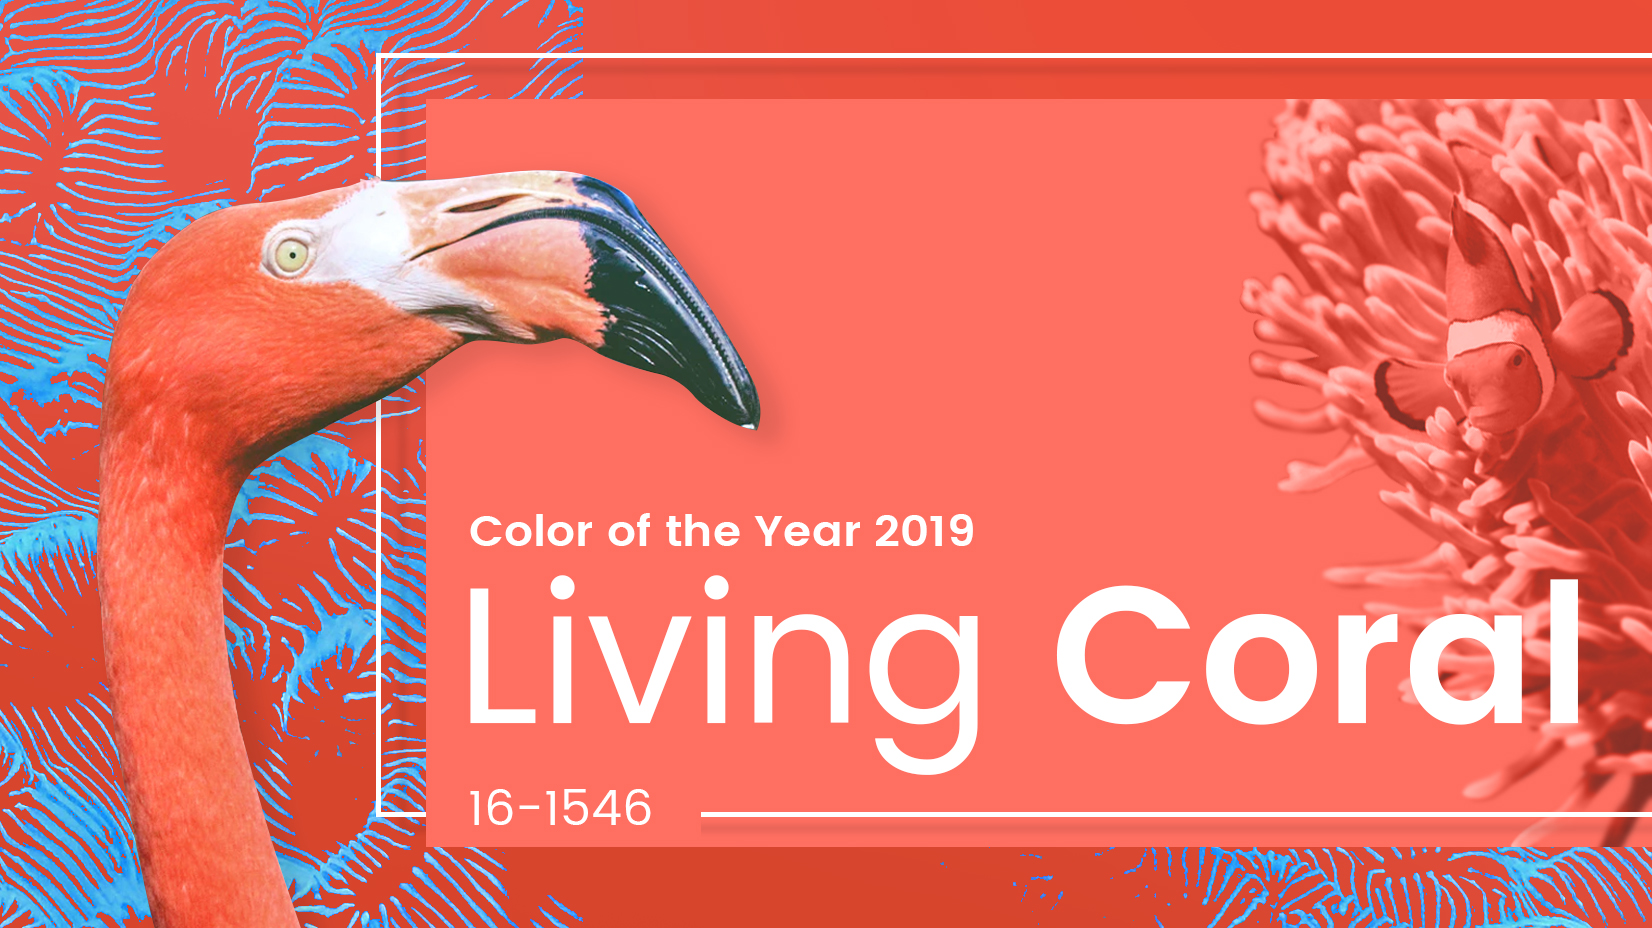 'Living Coral' is Pantone Color of The Year 2019